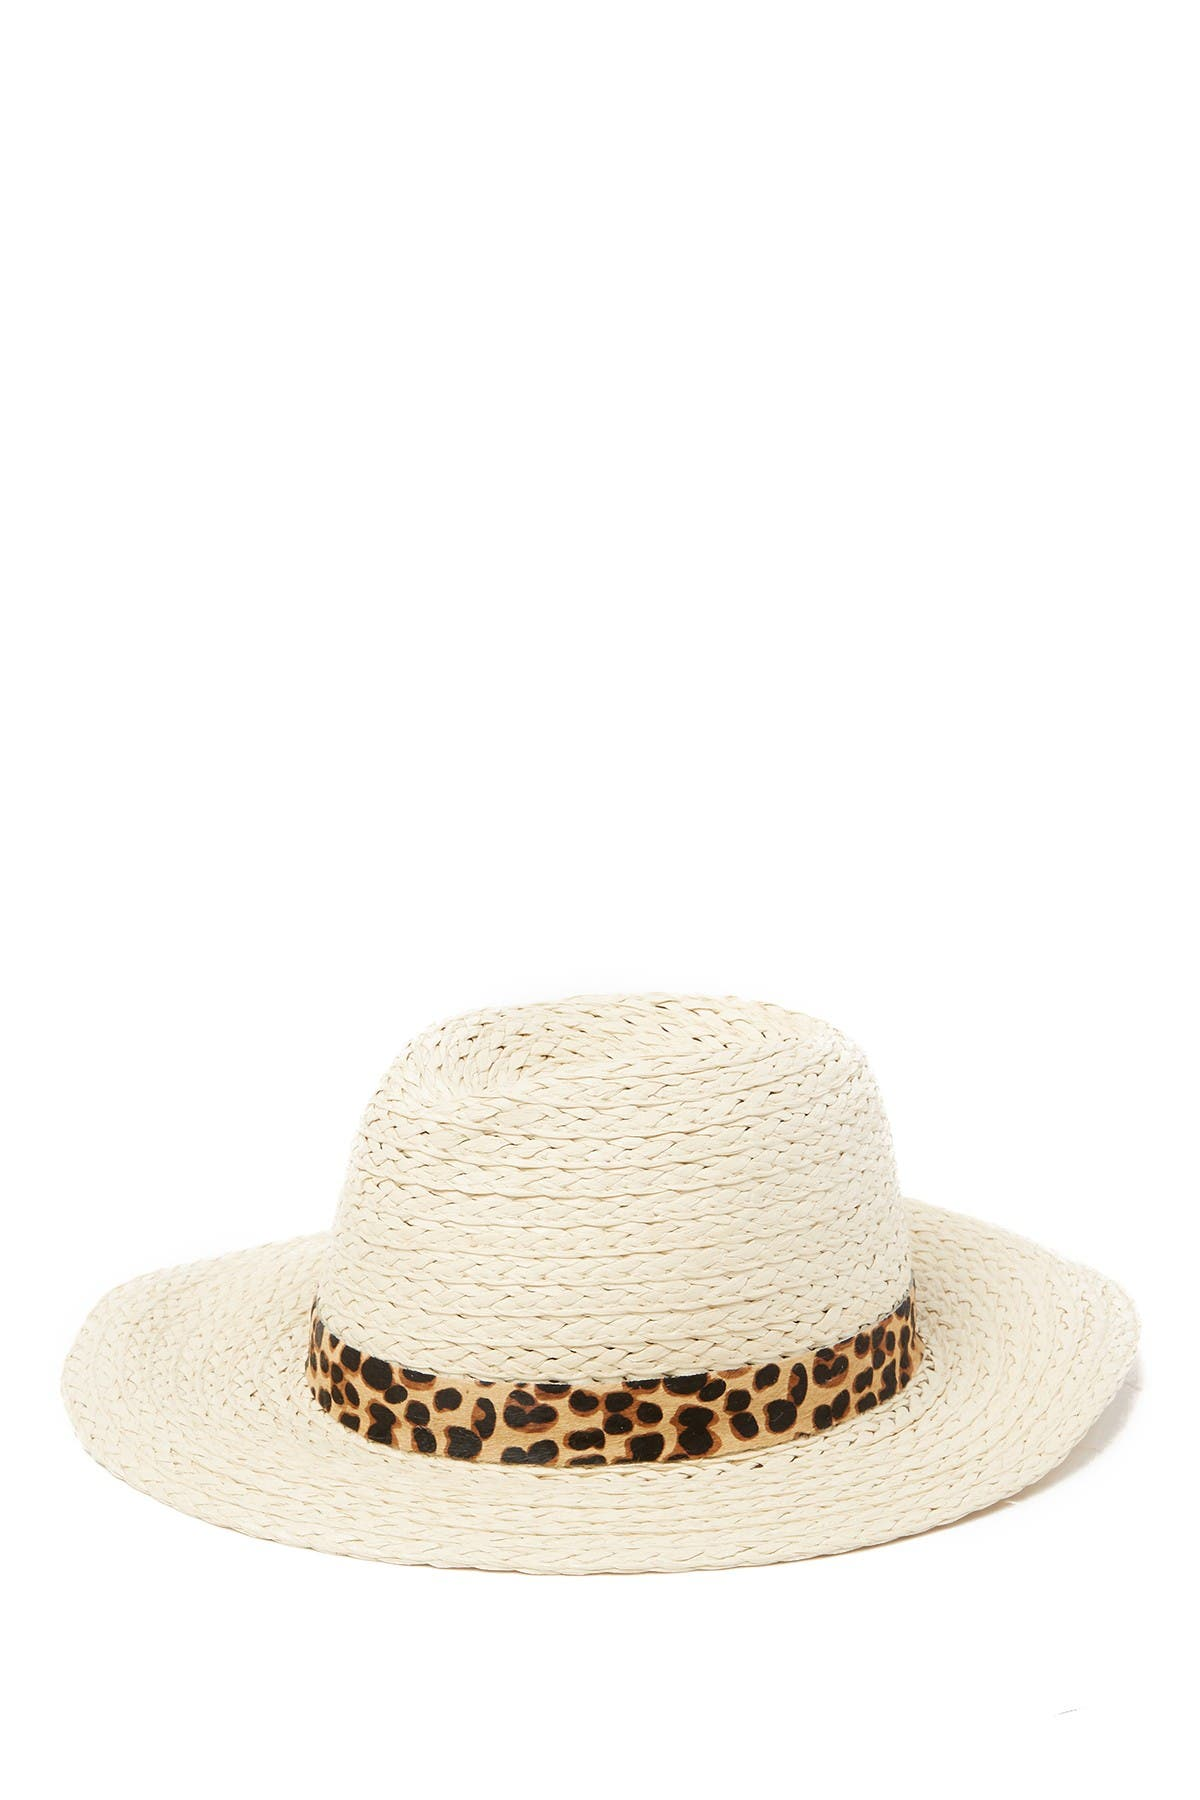 Image of Vince Camuto Genuine Calf Hair Banded Panama Hat